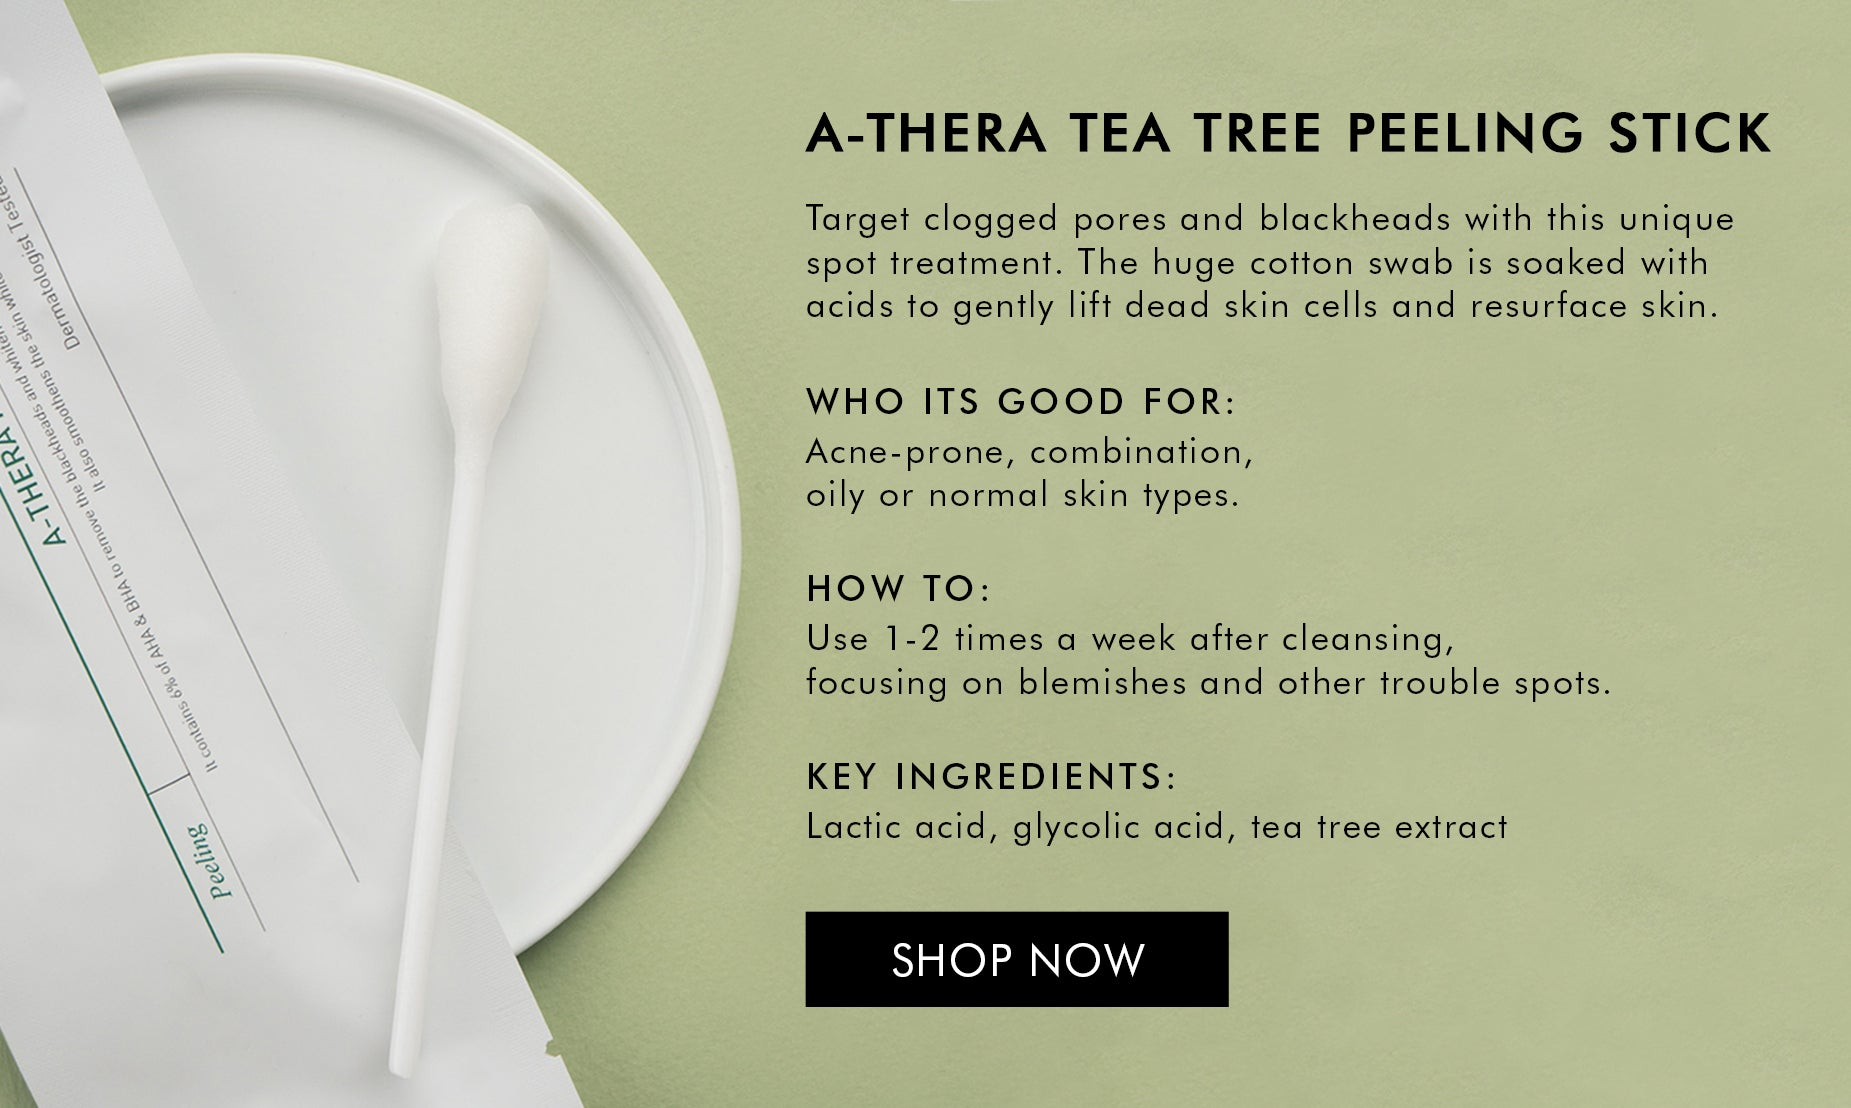 Shop A-there tea tree peeling stick